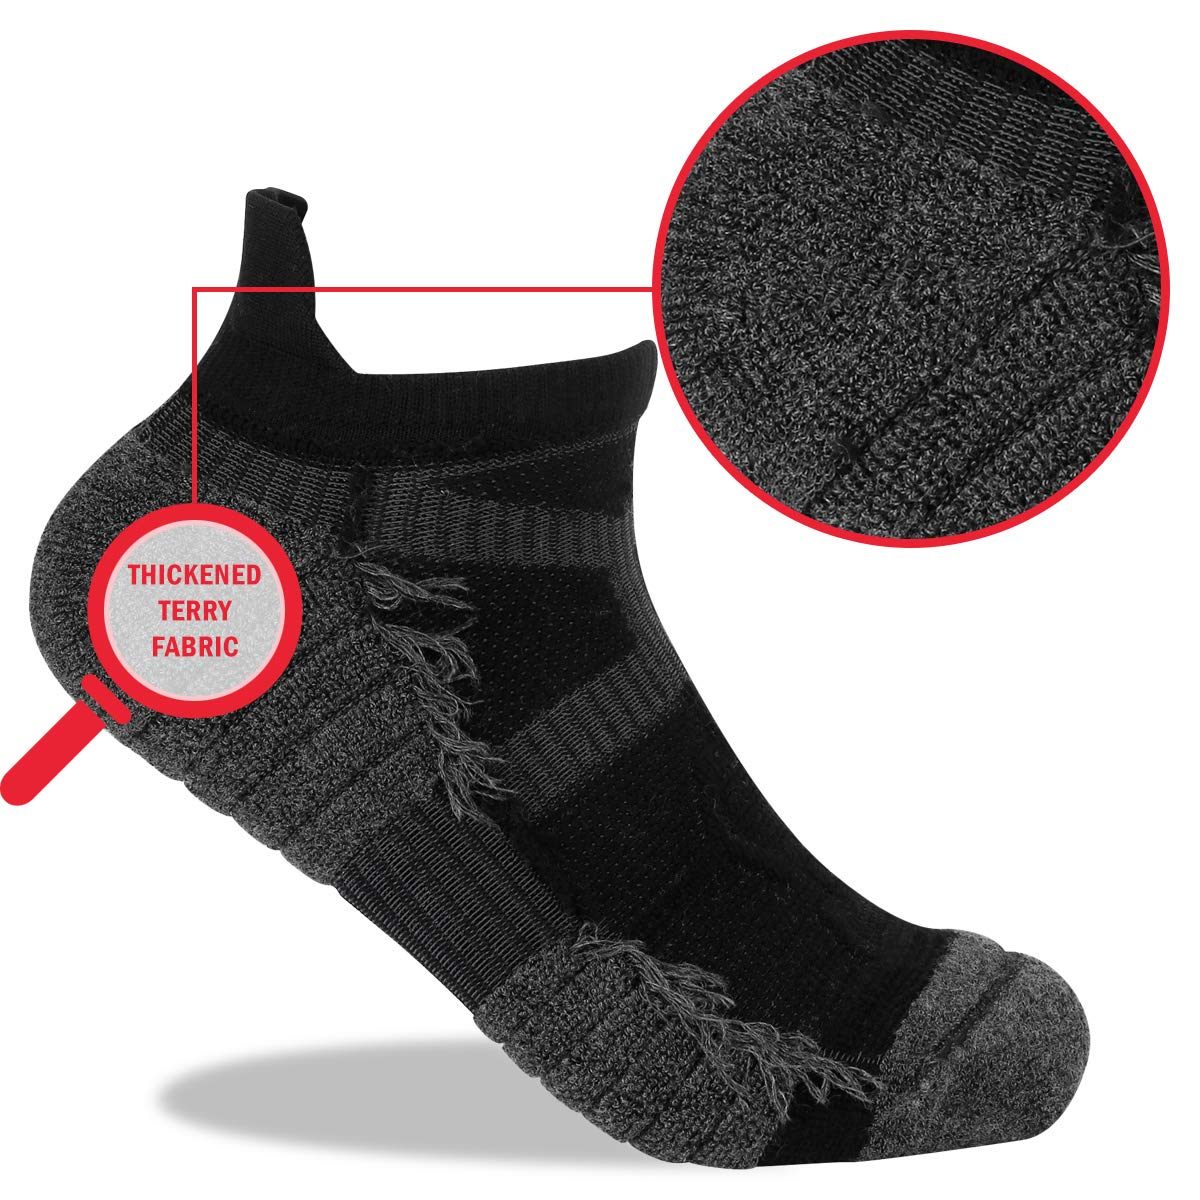 YUEDGE 5 Pairs Cushion Low Cut No Show Sports Socks Trainer Ankle Running Socks for Men and Women